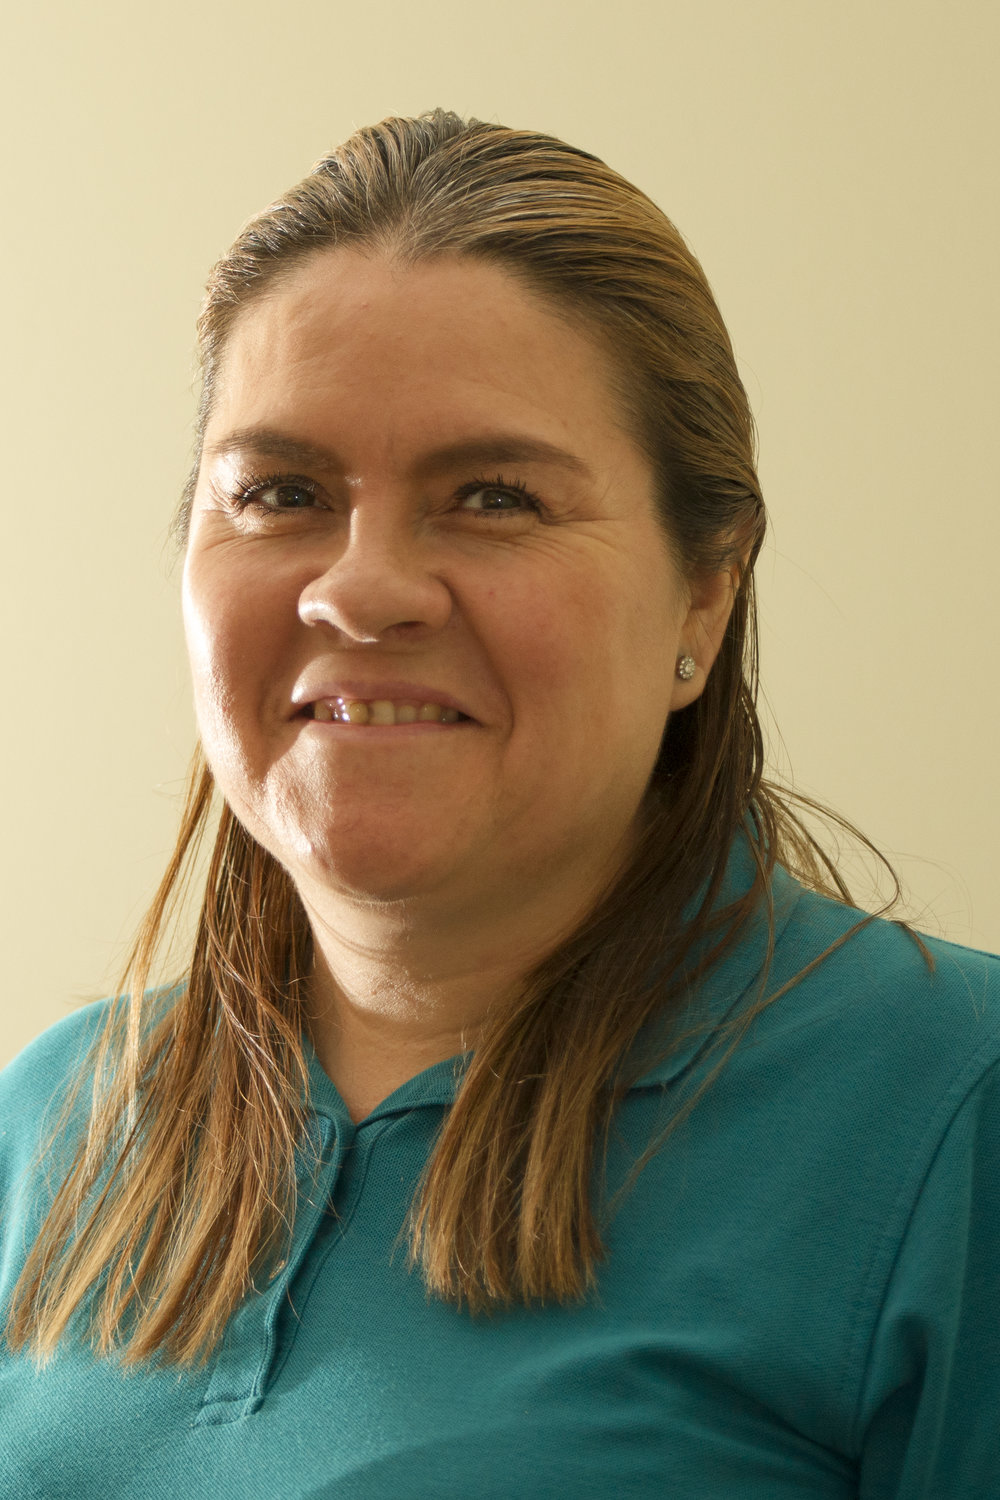 Maria  is one of our newest staff members but her mom skills shine right through in her role as resident assistant.